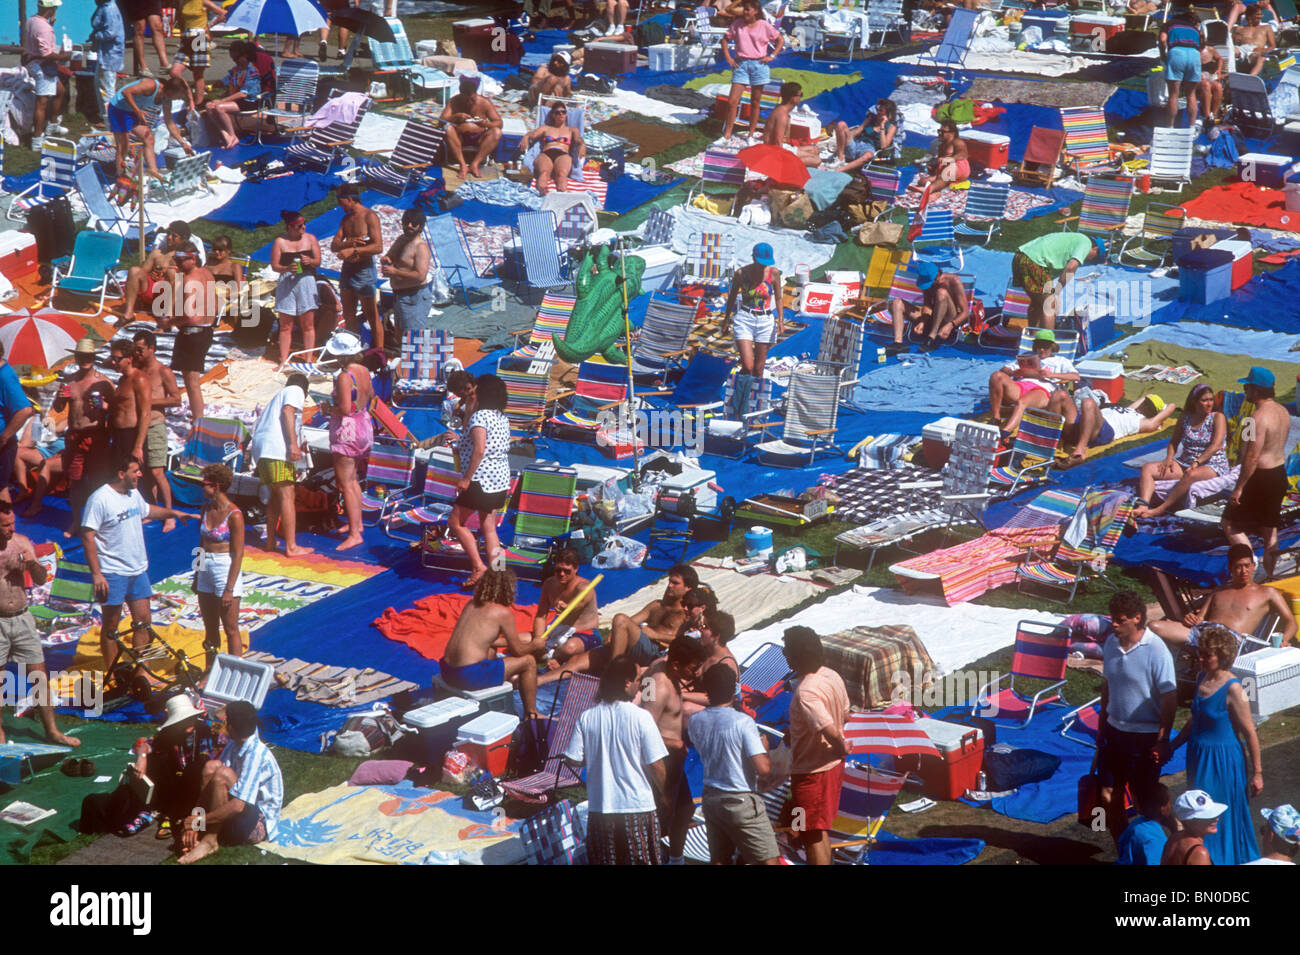 Jazz festival crowd at Saratoga Performing Arts Center - Stock Image